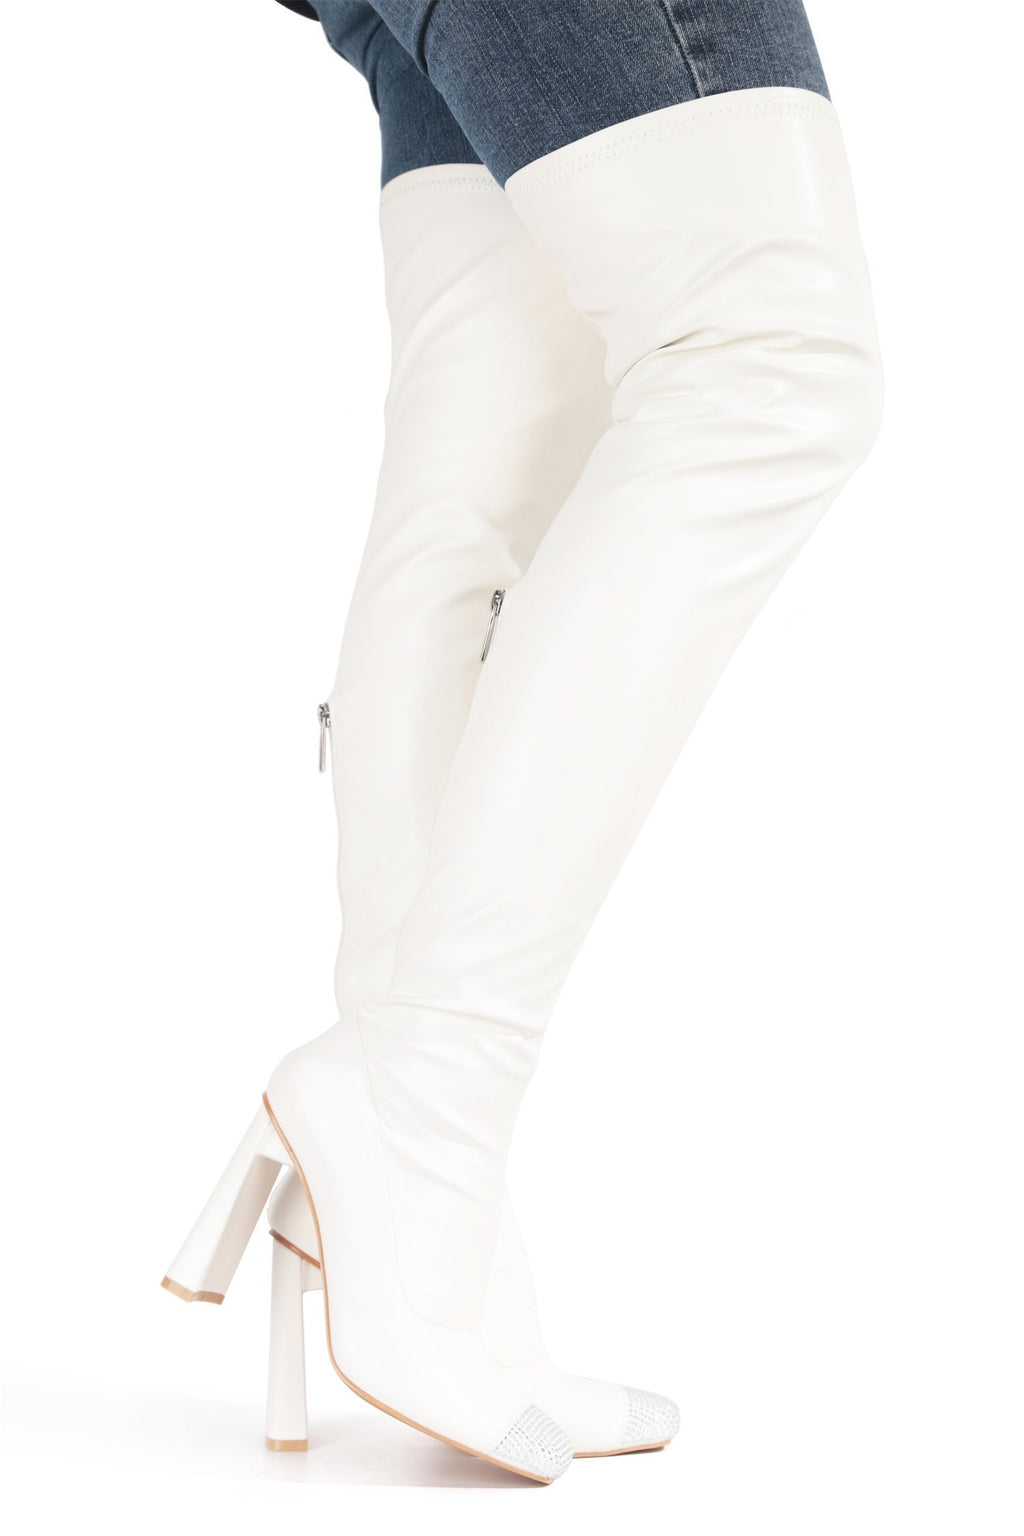 Cape Robbin Ringpop White Over The Knee Boots